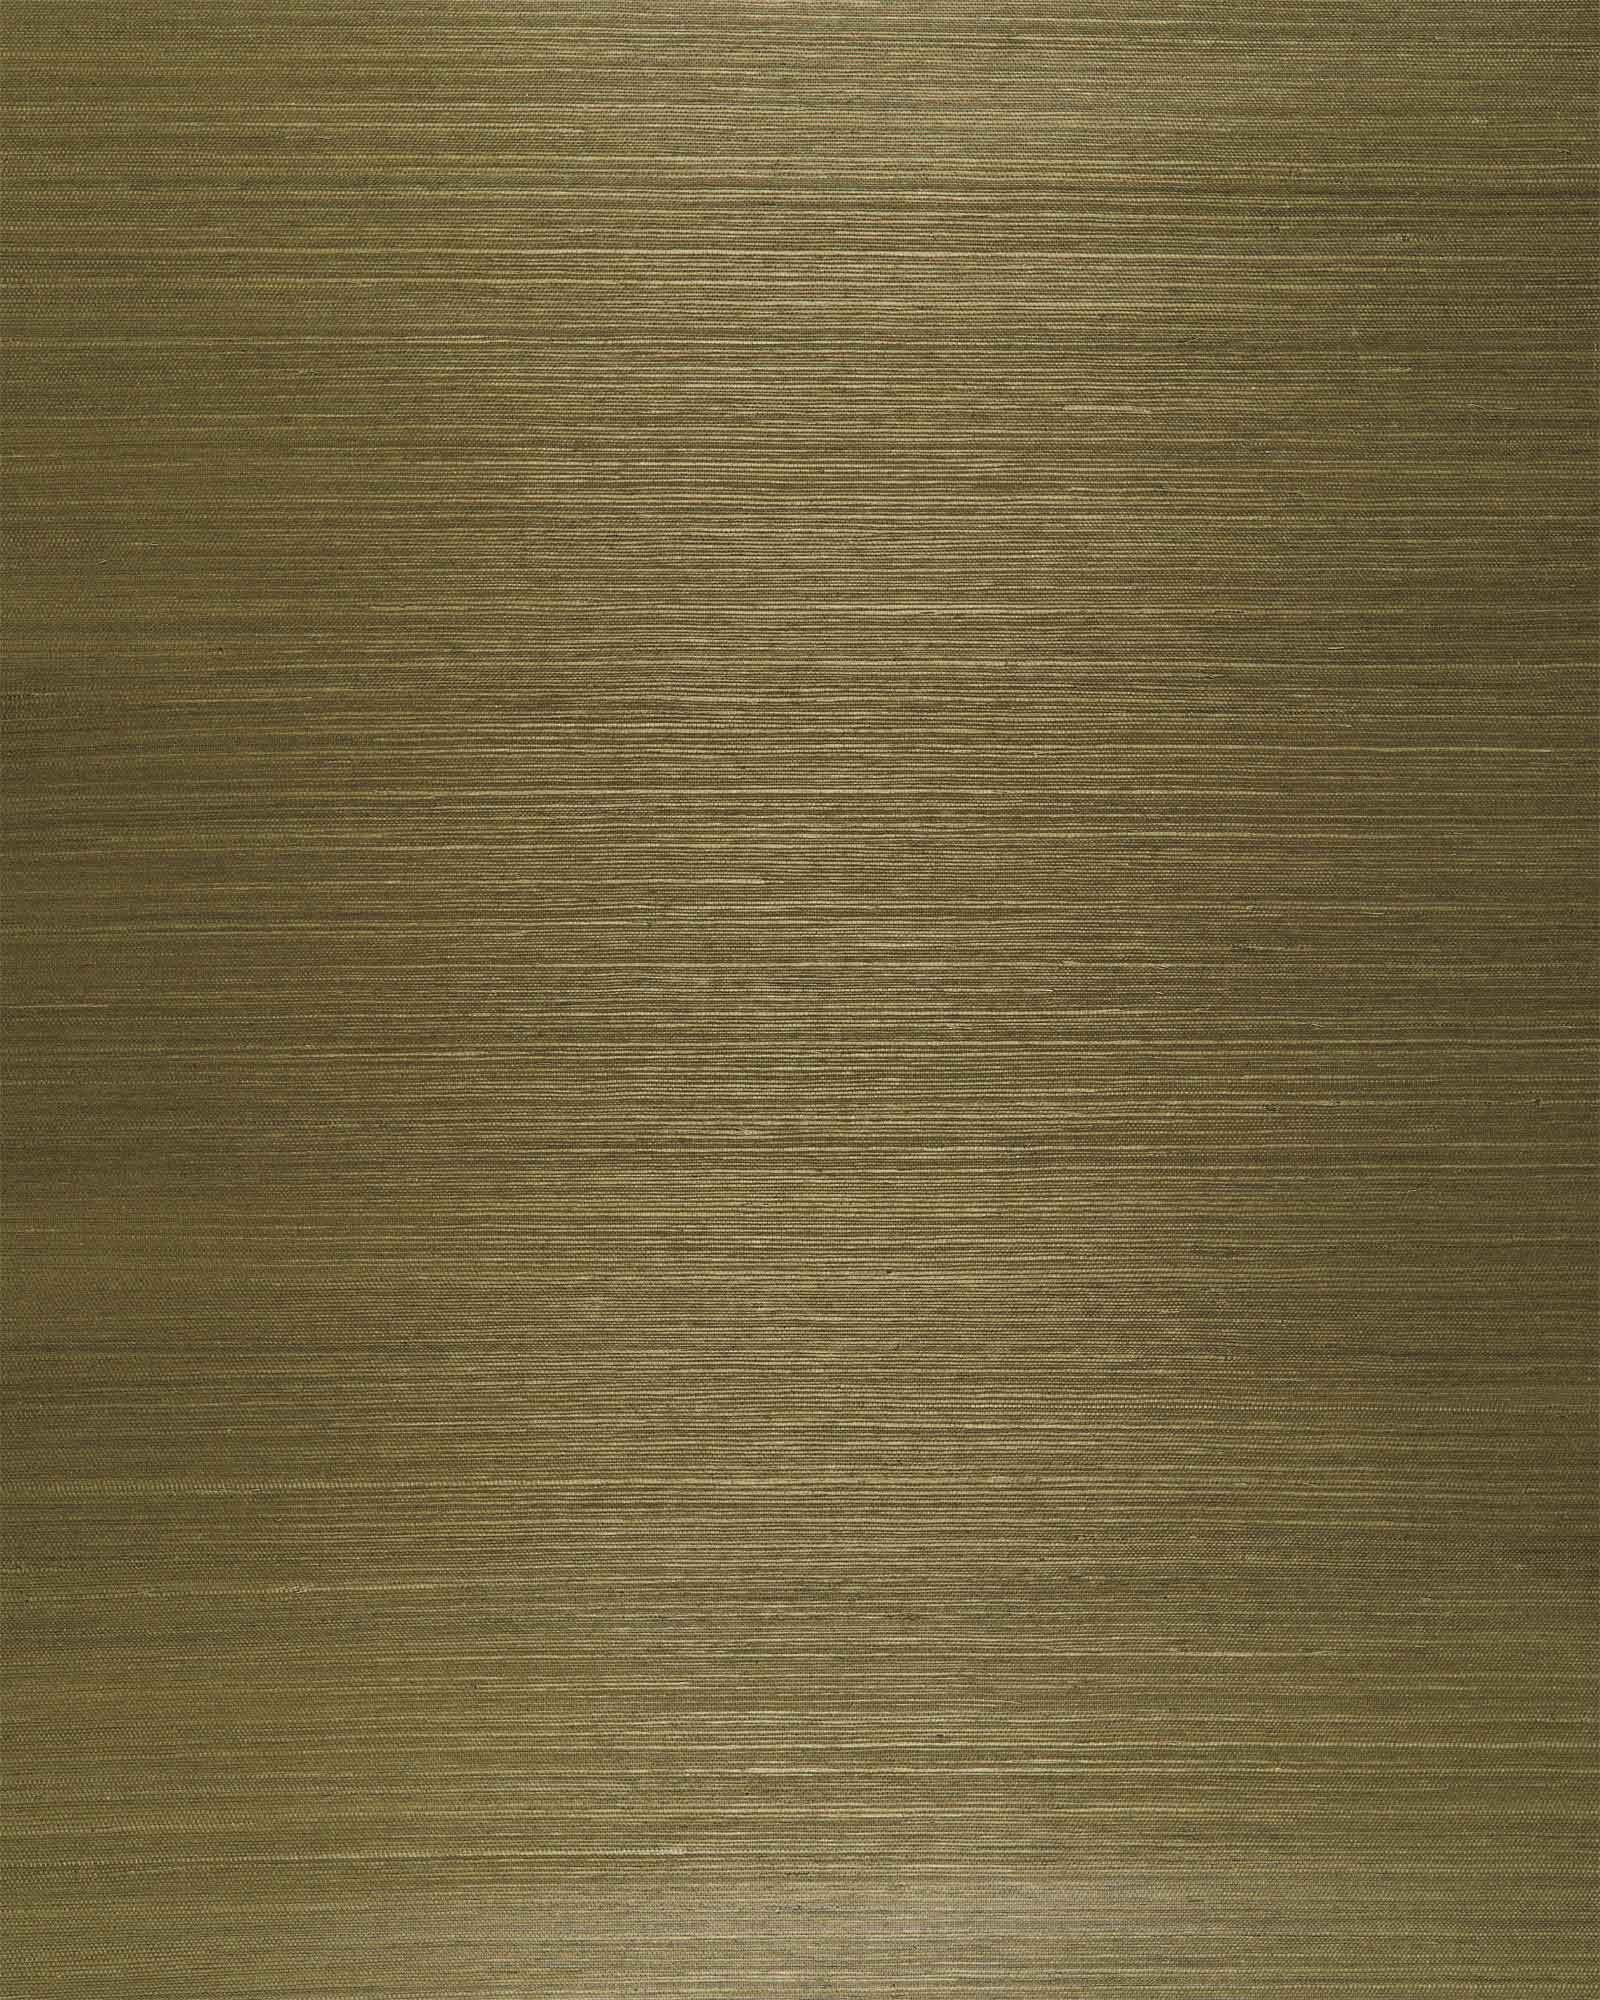 Grasscloth Wallcovering Swatch, Grove